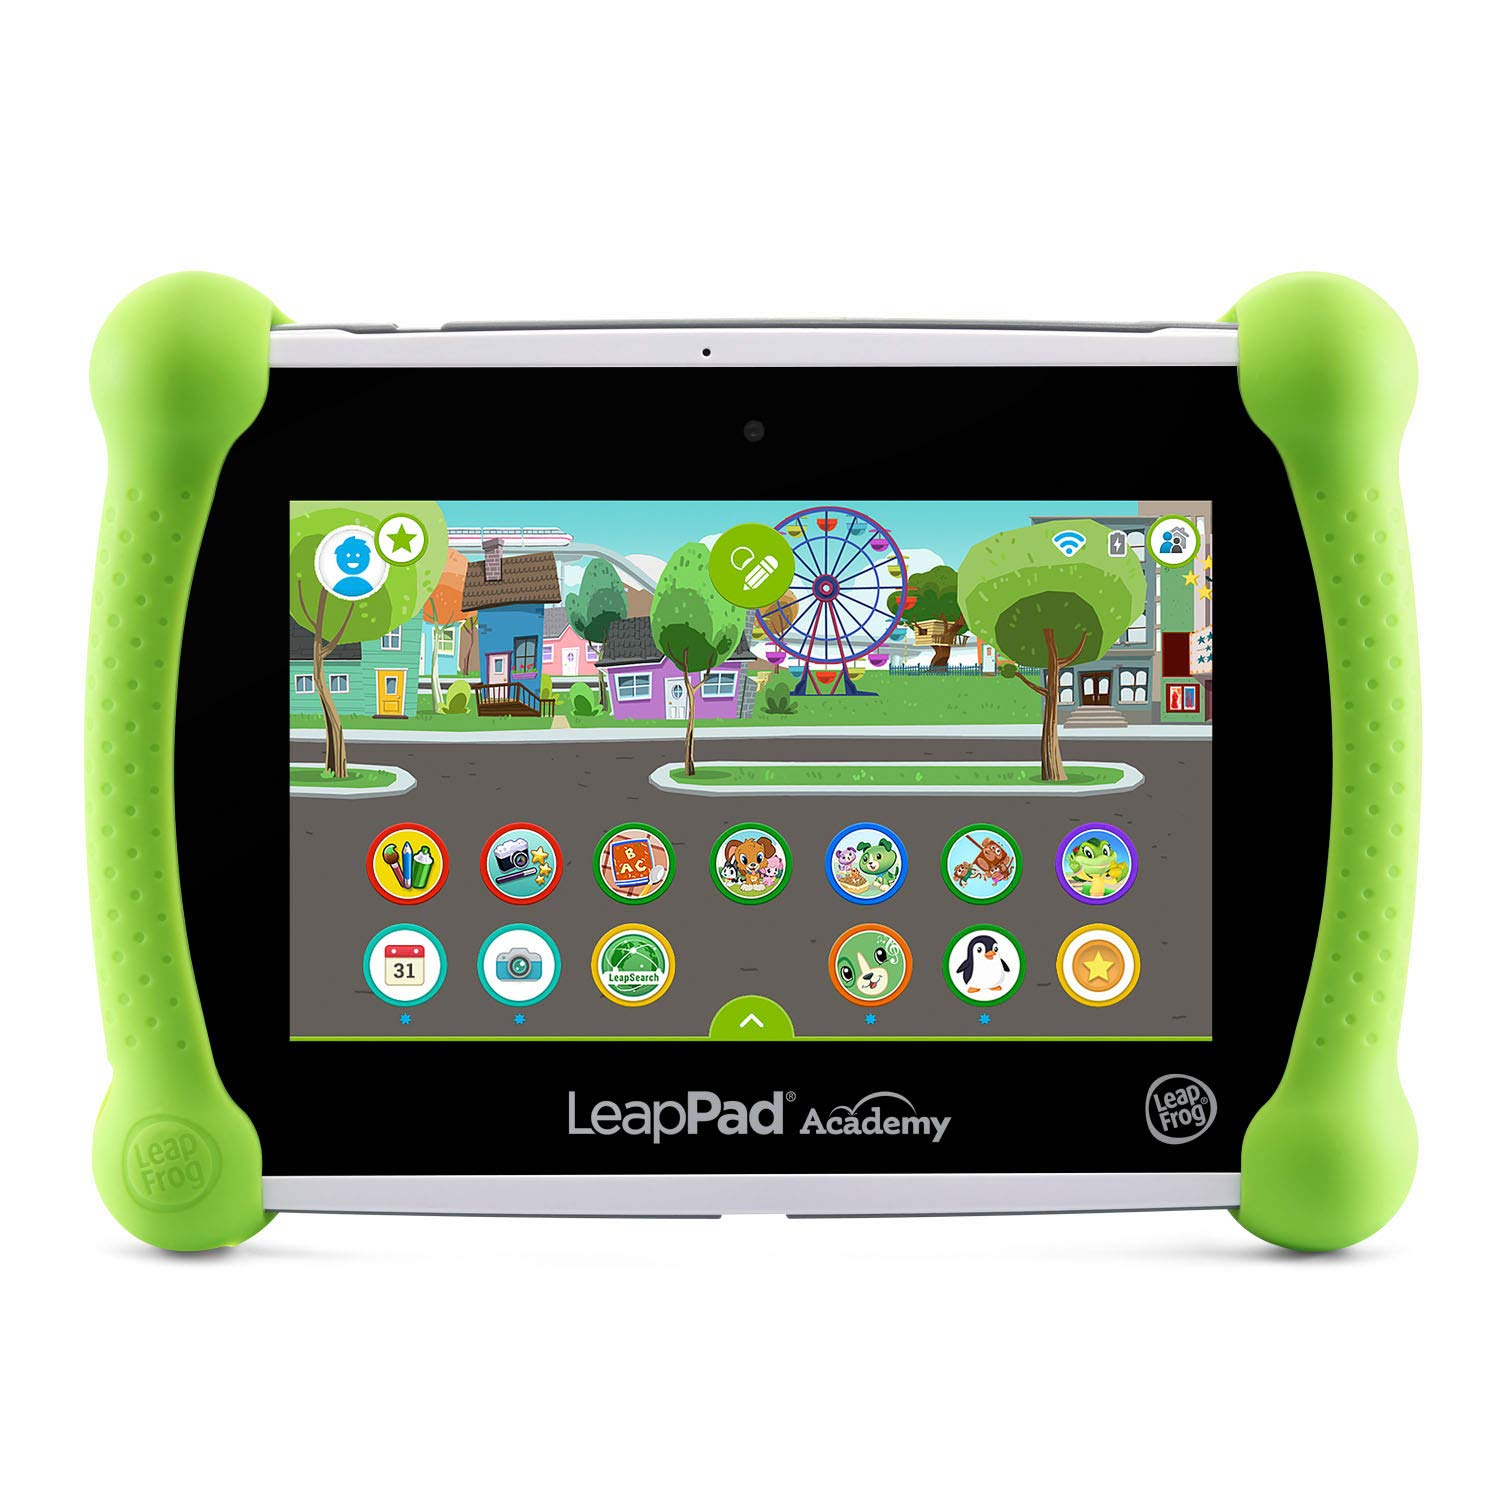 LeapFrog LeapPad Academy Kids' Learning Tablet, Green by LeapFrog